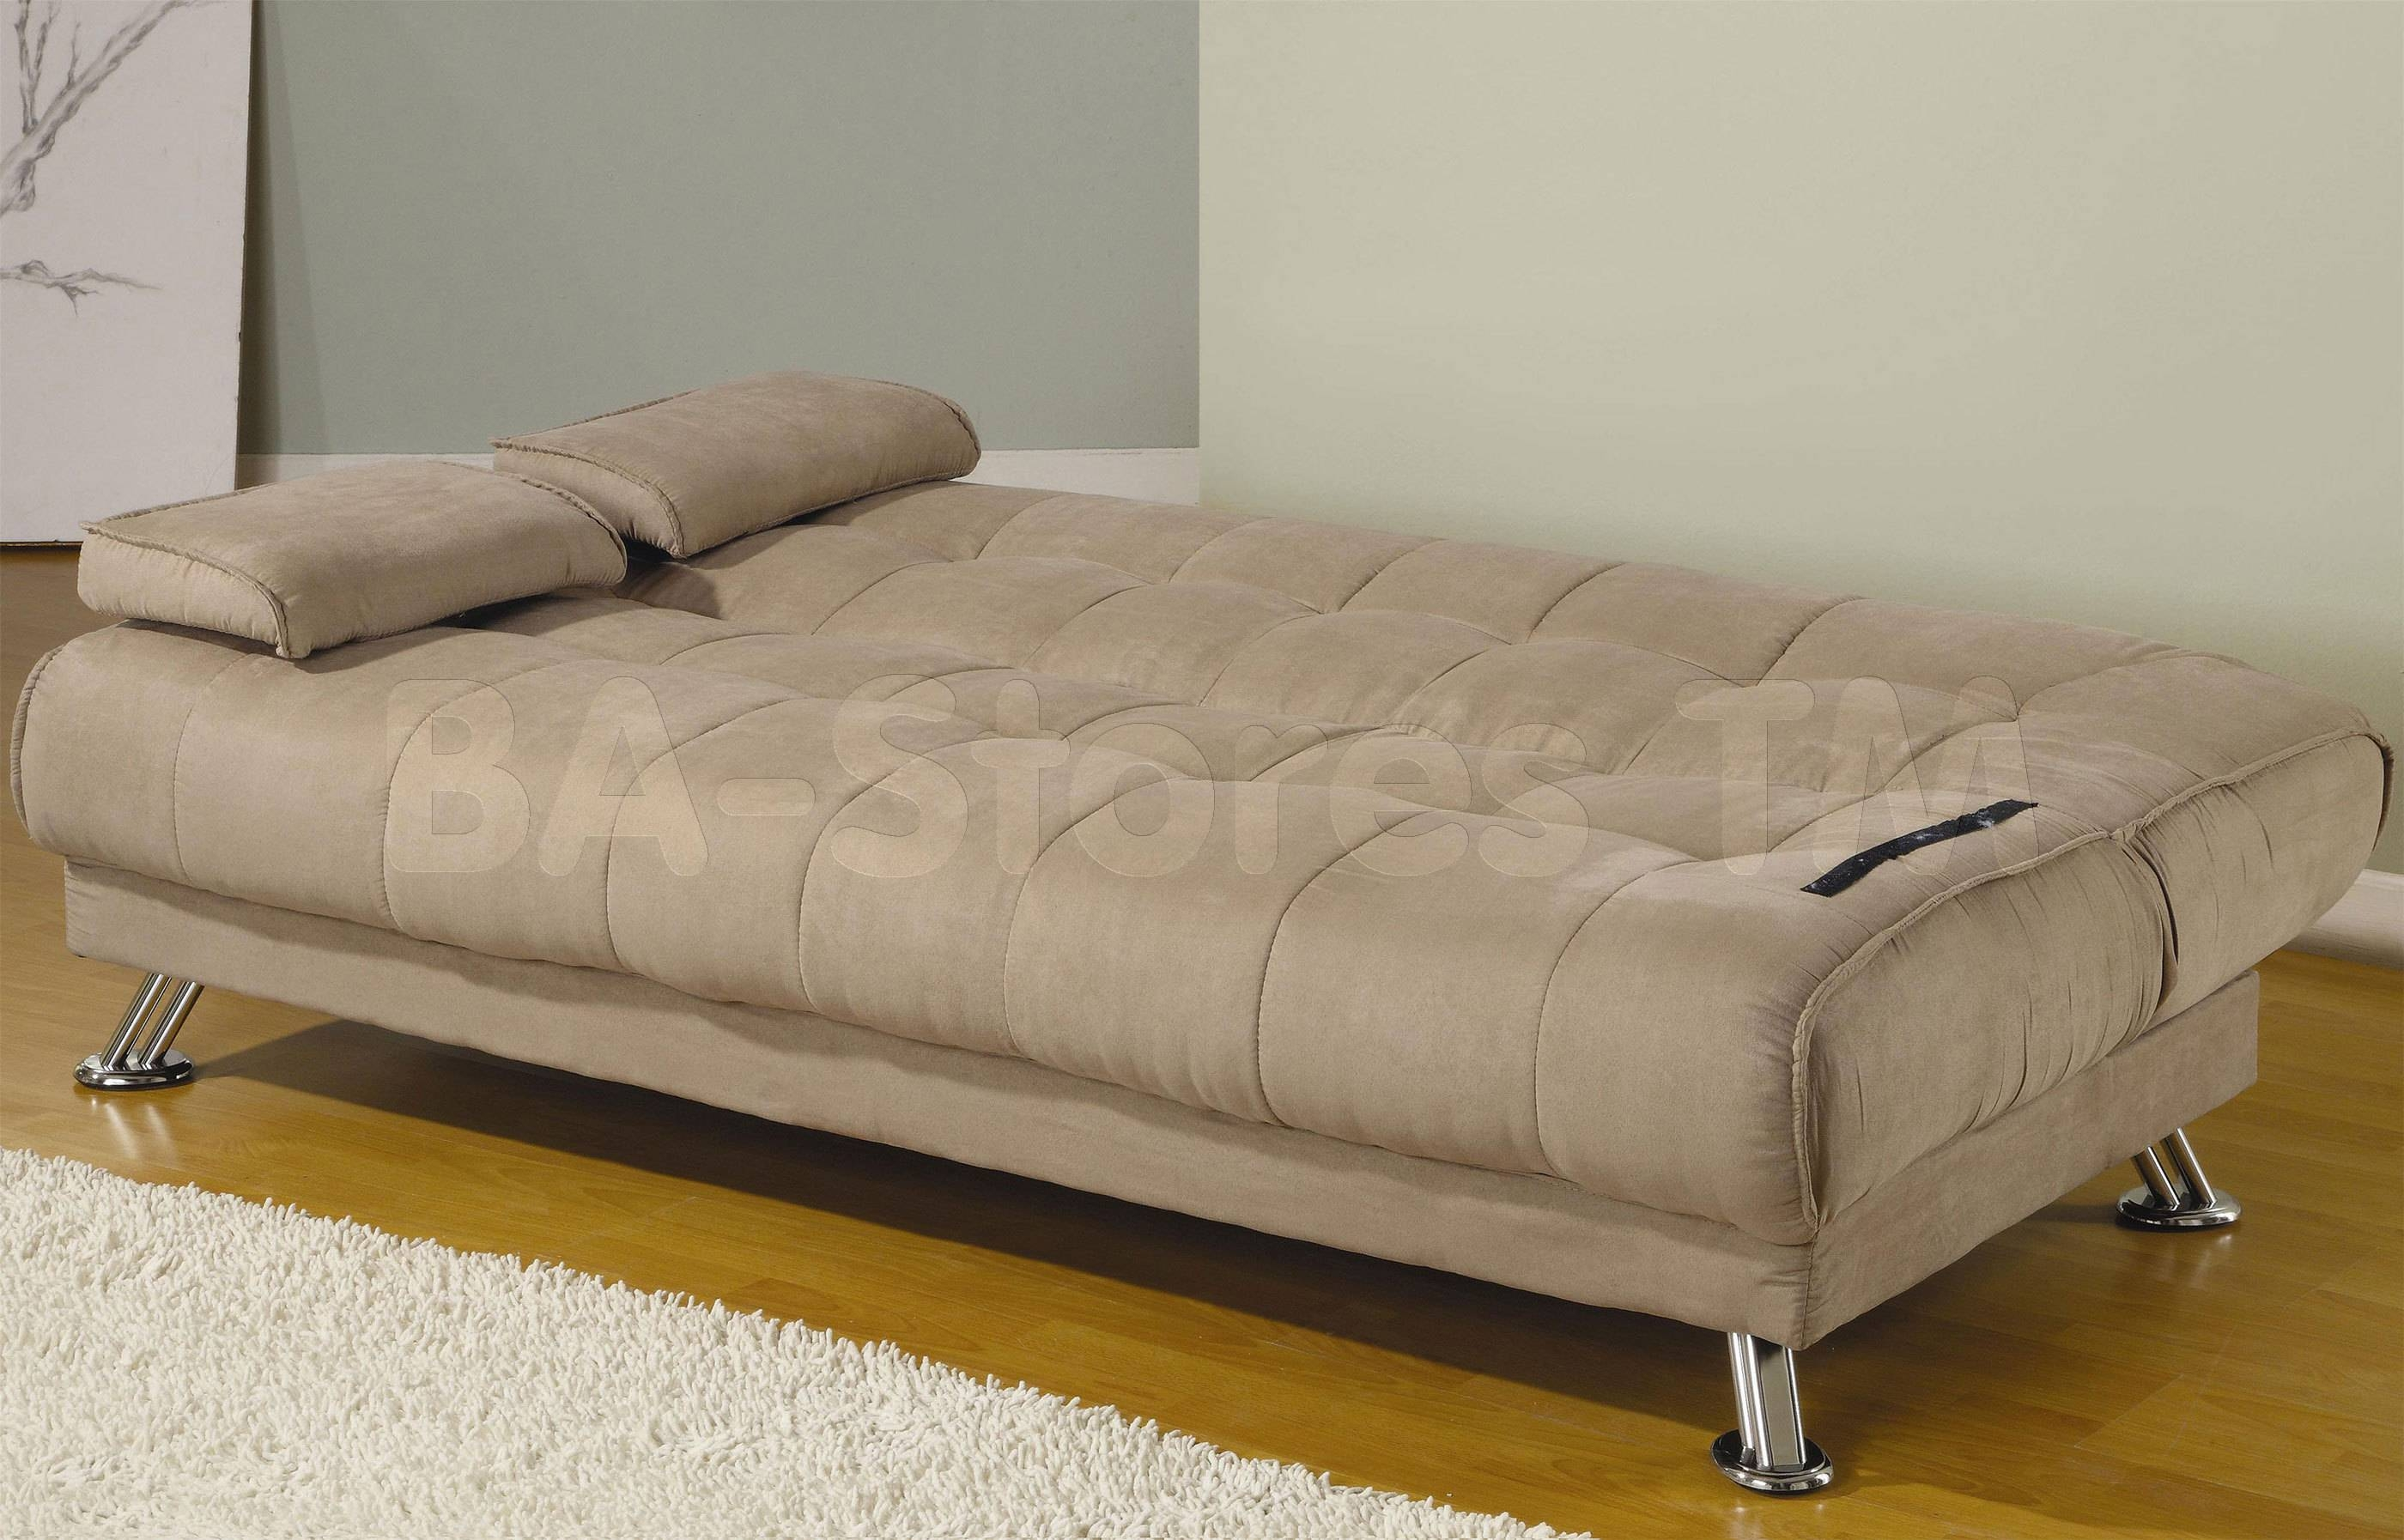 $346.45 Beige Microfiber Convertible Sofa Bed With Removable for Coaster Futon Sofa Beds (Image 1 of 15)